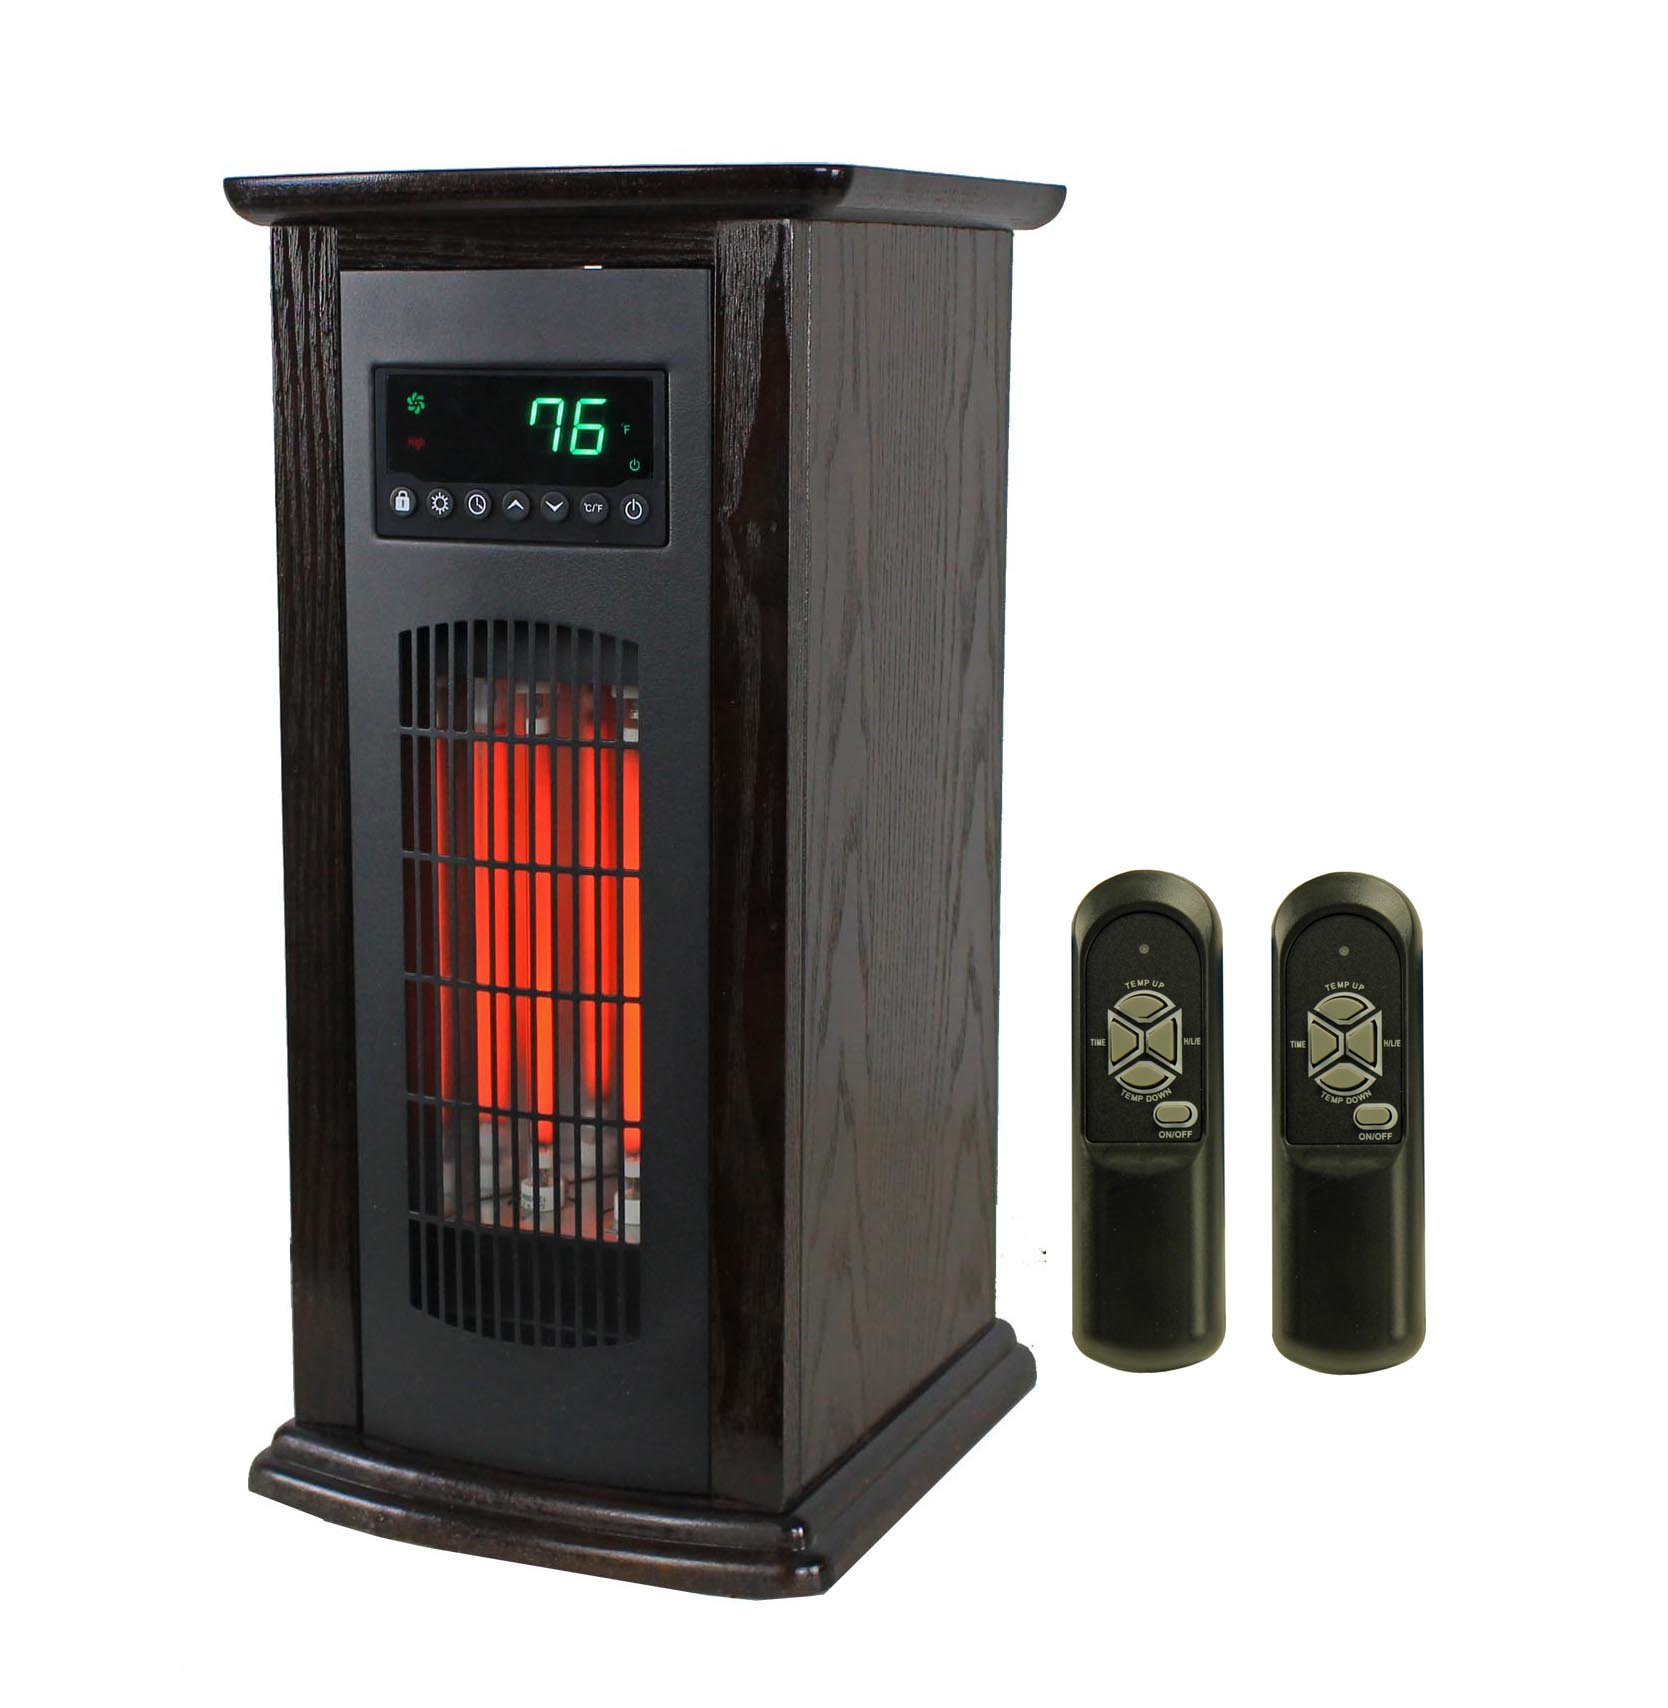 LifeSmart LifePro LS-PCHT1029 1,500 Watts Portable Infrared Quartz Tower Heater